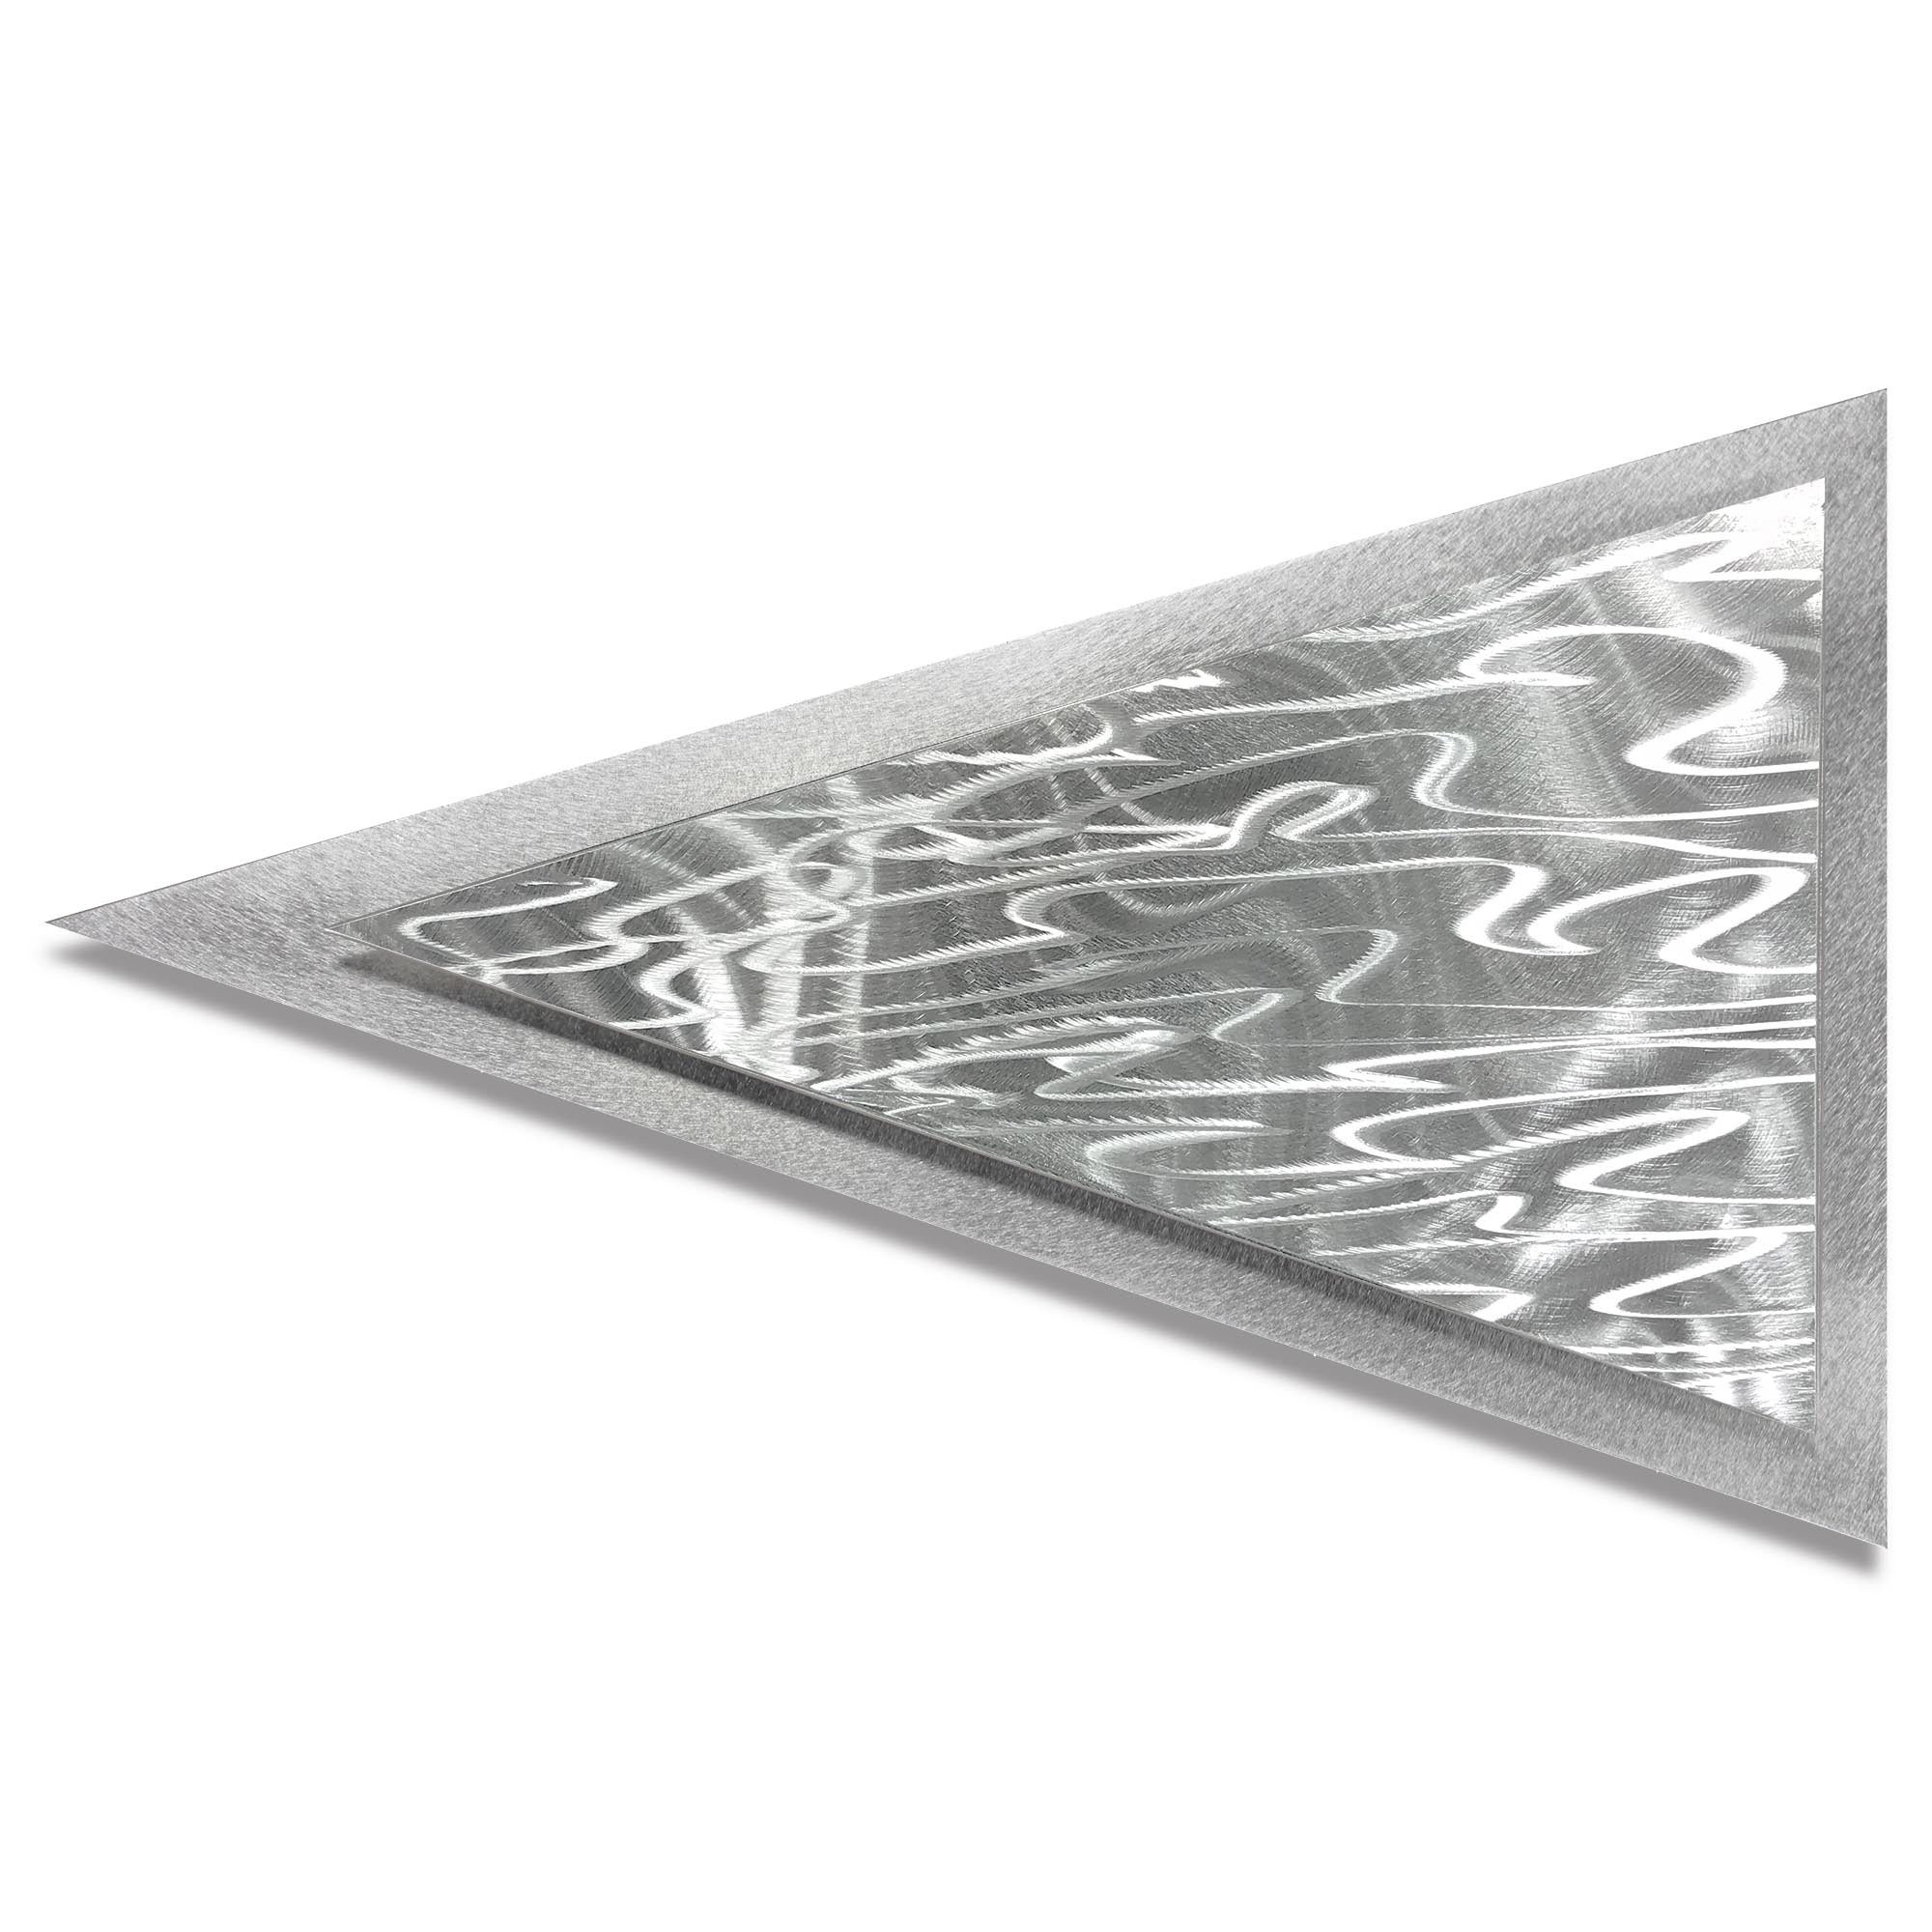 Currents Arrow by Helena Martin - Modern Metal Art on Ground Metal